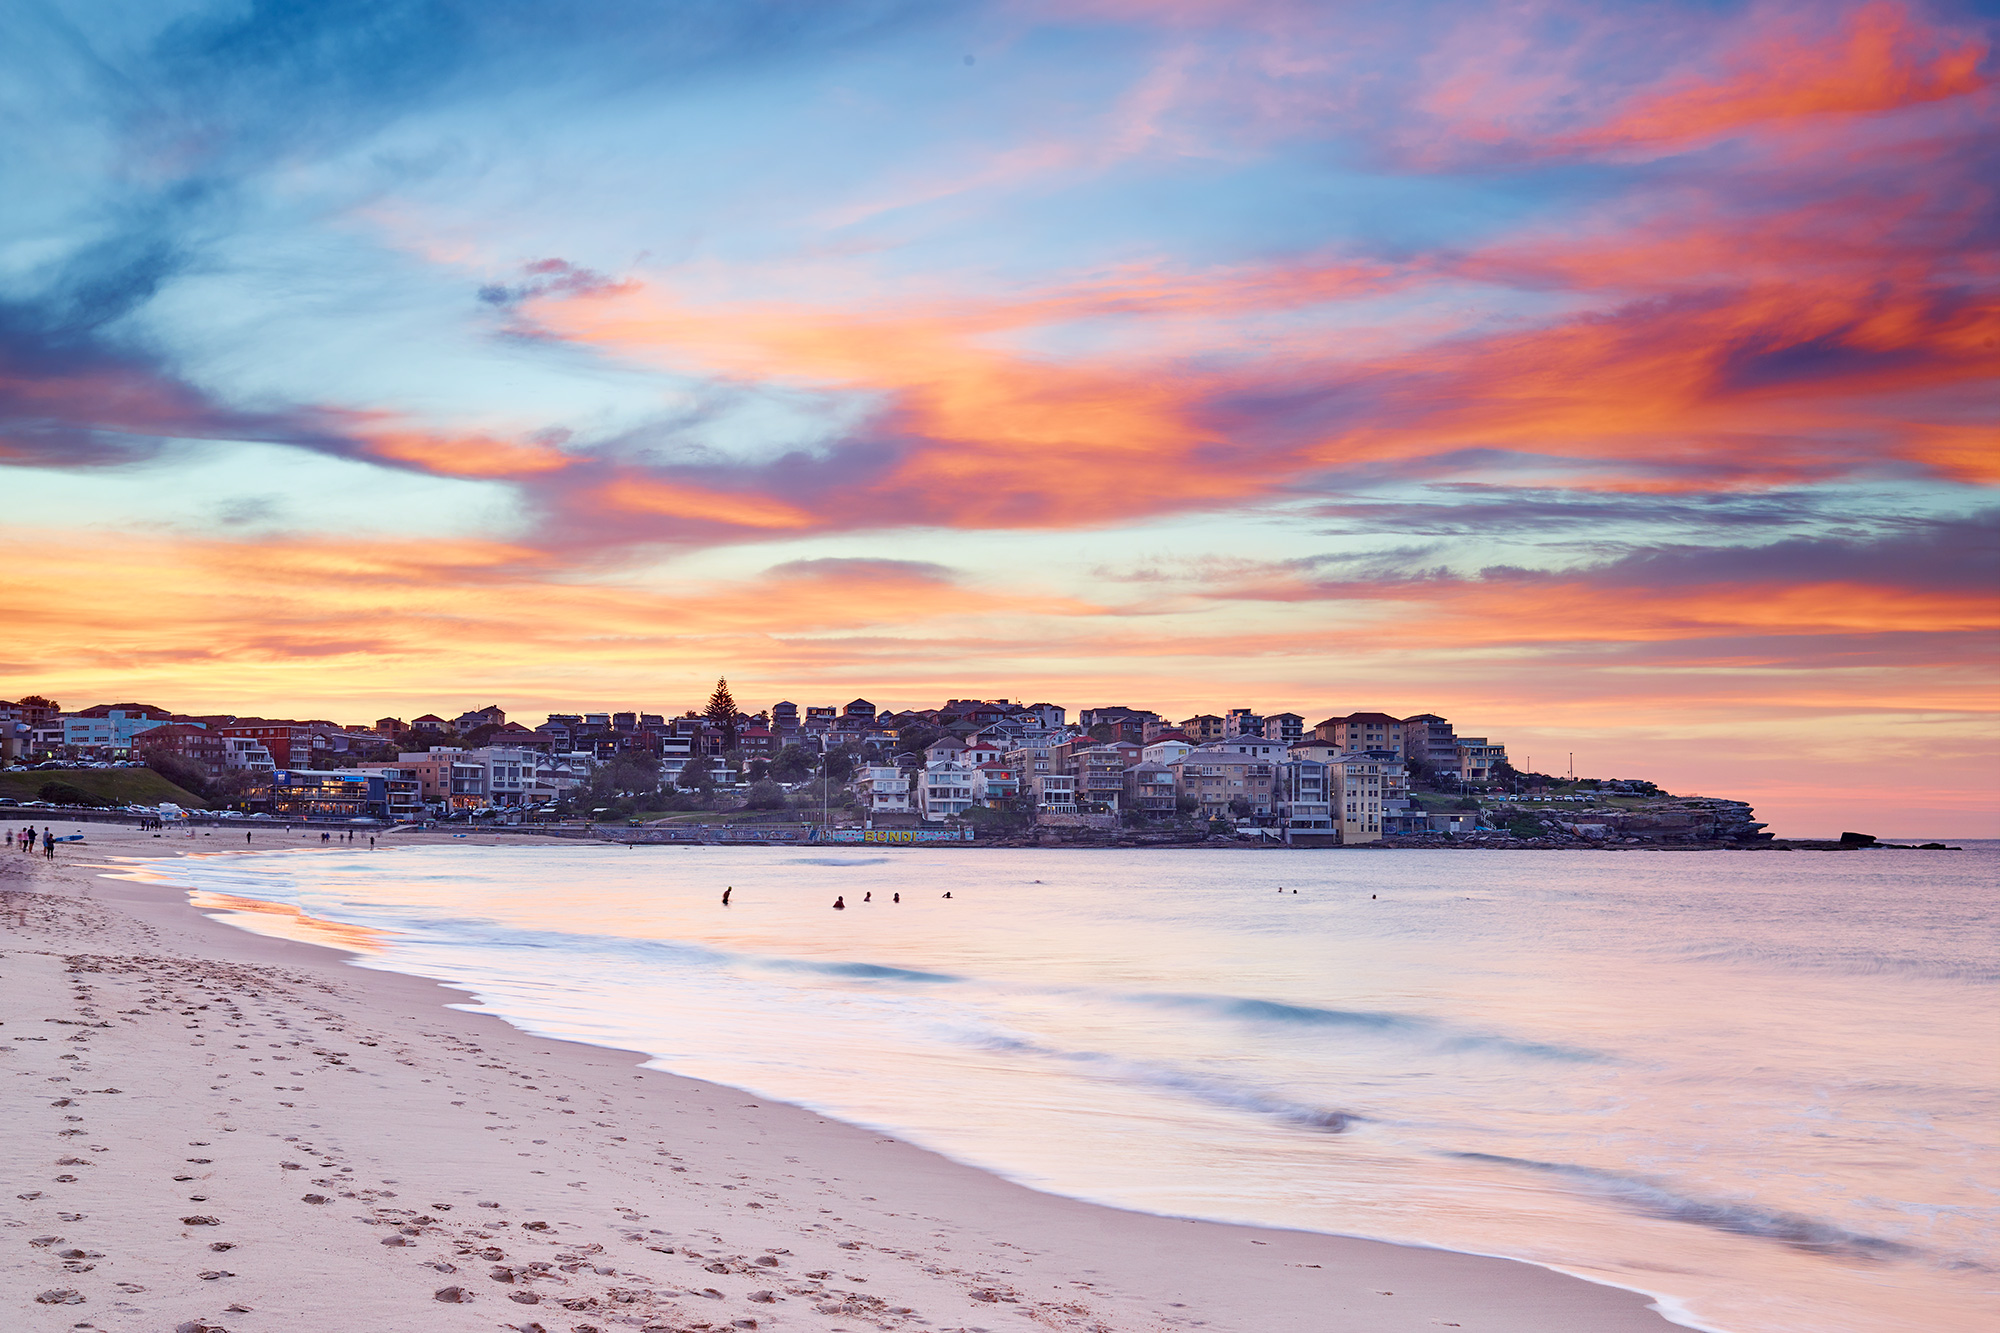 Ah Bondi, looking the goods this morning